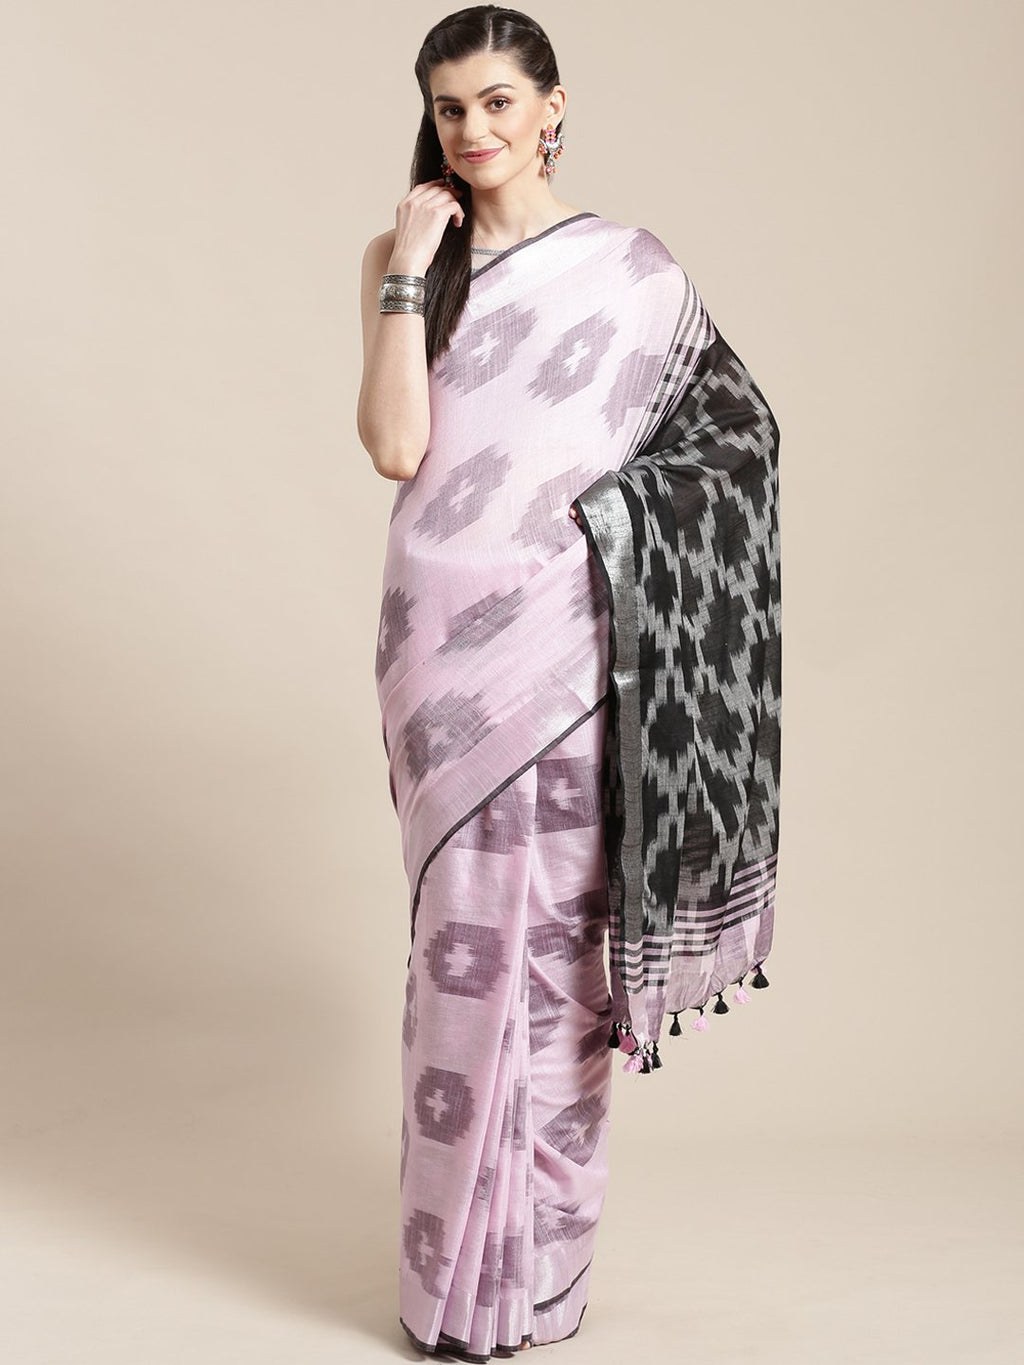 Linen Handwoven Saree and Blouse-Saree-Kalakari India-ALBGSA0042-Hand Woven, Linen, Sarees, Sustainable Fabrics, Traditional Weave-[Linen,Ethnic,wear,Fashionista,Handloom,Handicraft,Indigo,blockprint,block,print,Cotton,Chanderi,Blue, latest,classy,party,bollywood,trendy,summer,style,traditional,formal,elegant,unique,style,hand,block,print, dabu,booti,gift,present,glamorous,affordable,collectible,Sari,Saree,printed, holi, Diwali, birthday, anniversary, sustainable, organic, scarf, online, low pri